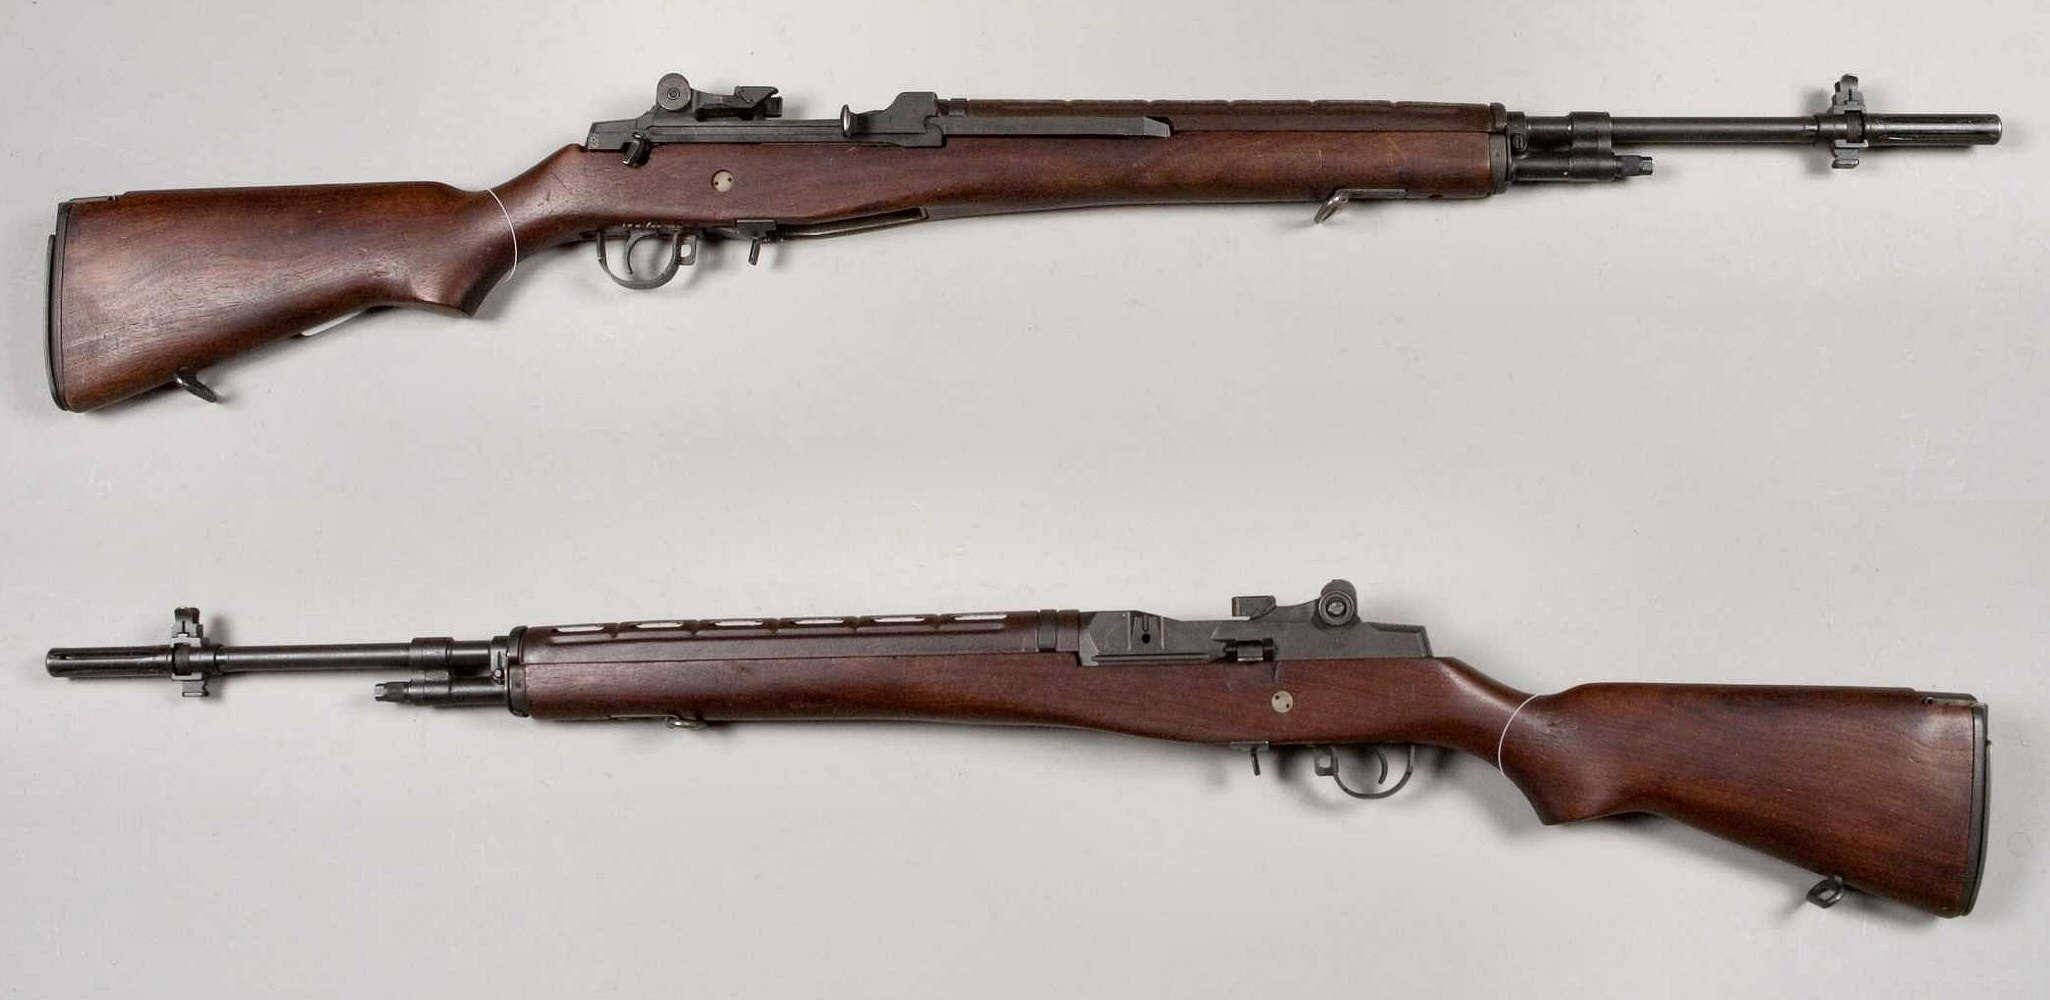 [Image: M14_rifle_-_USA_-_7,62x51mm_-_Arm%C3%A9museum.jpg]